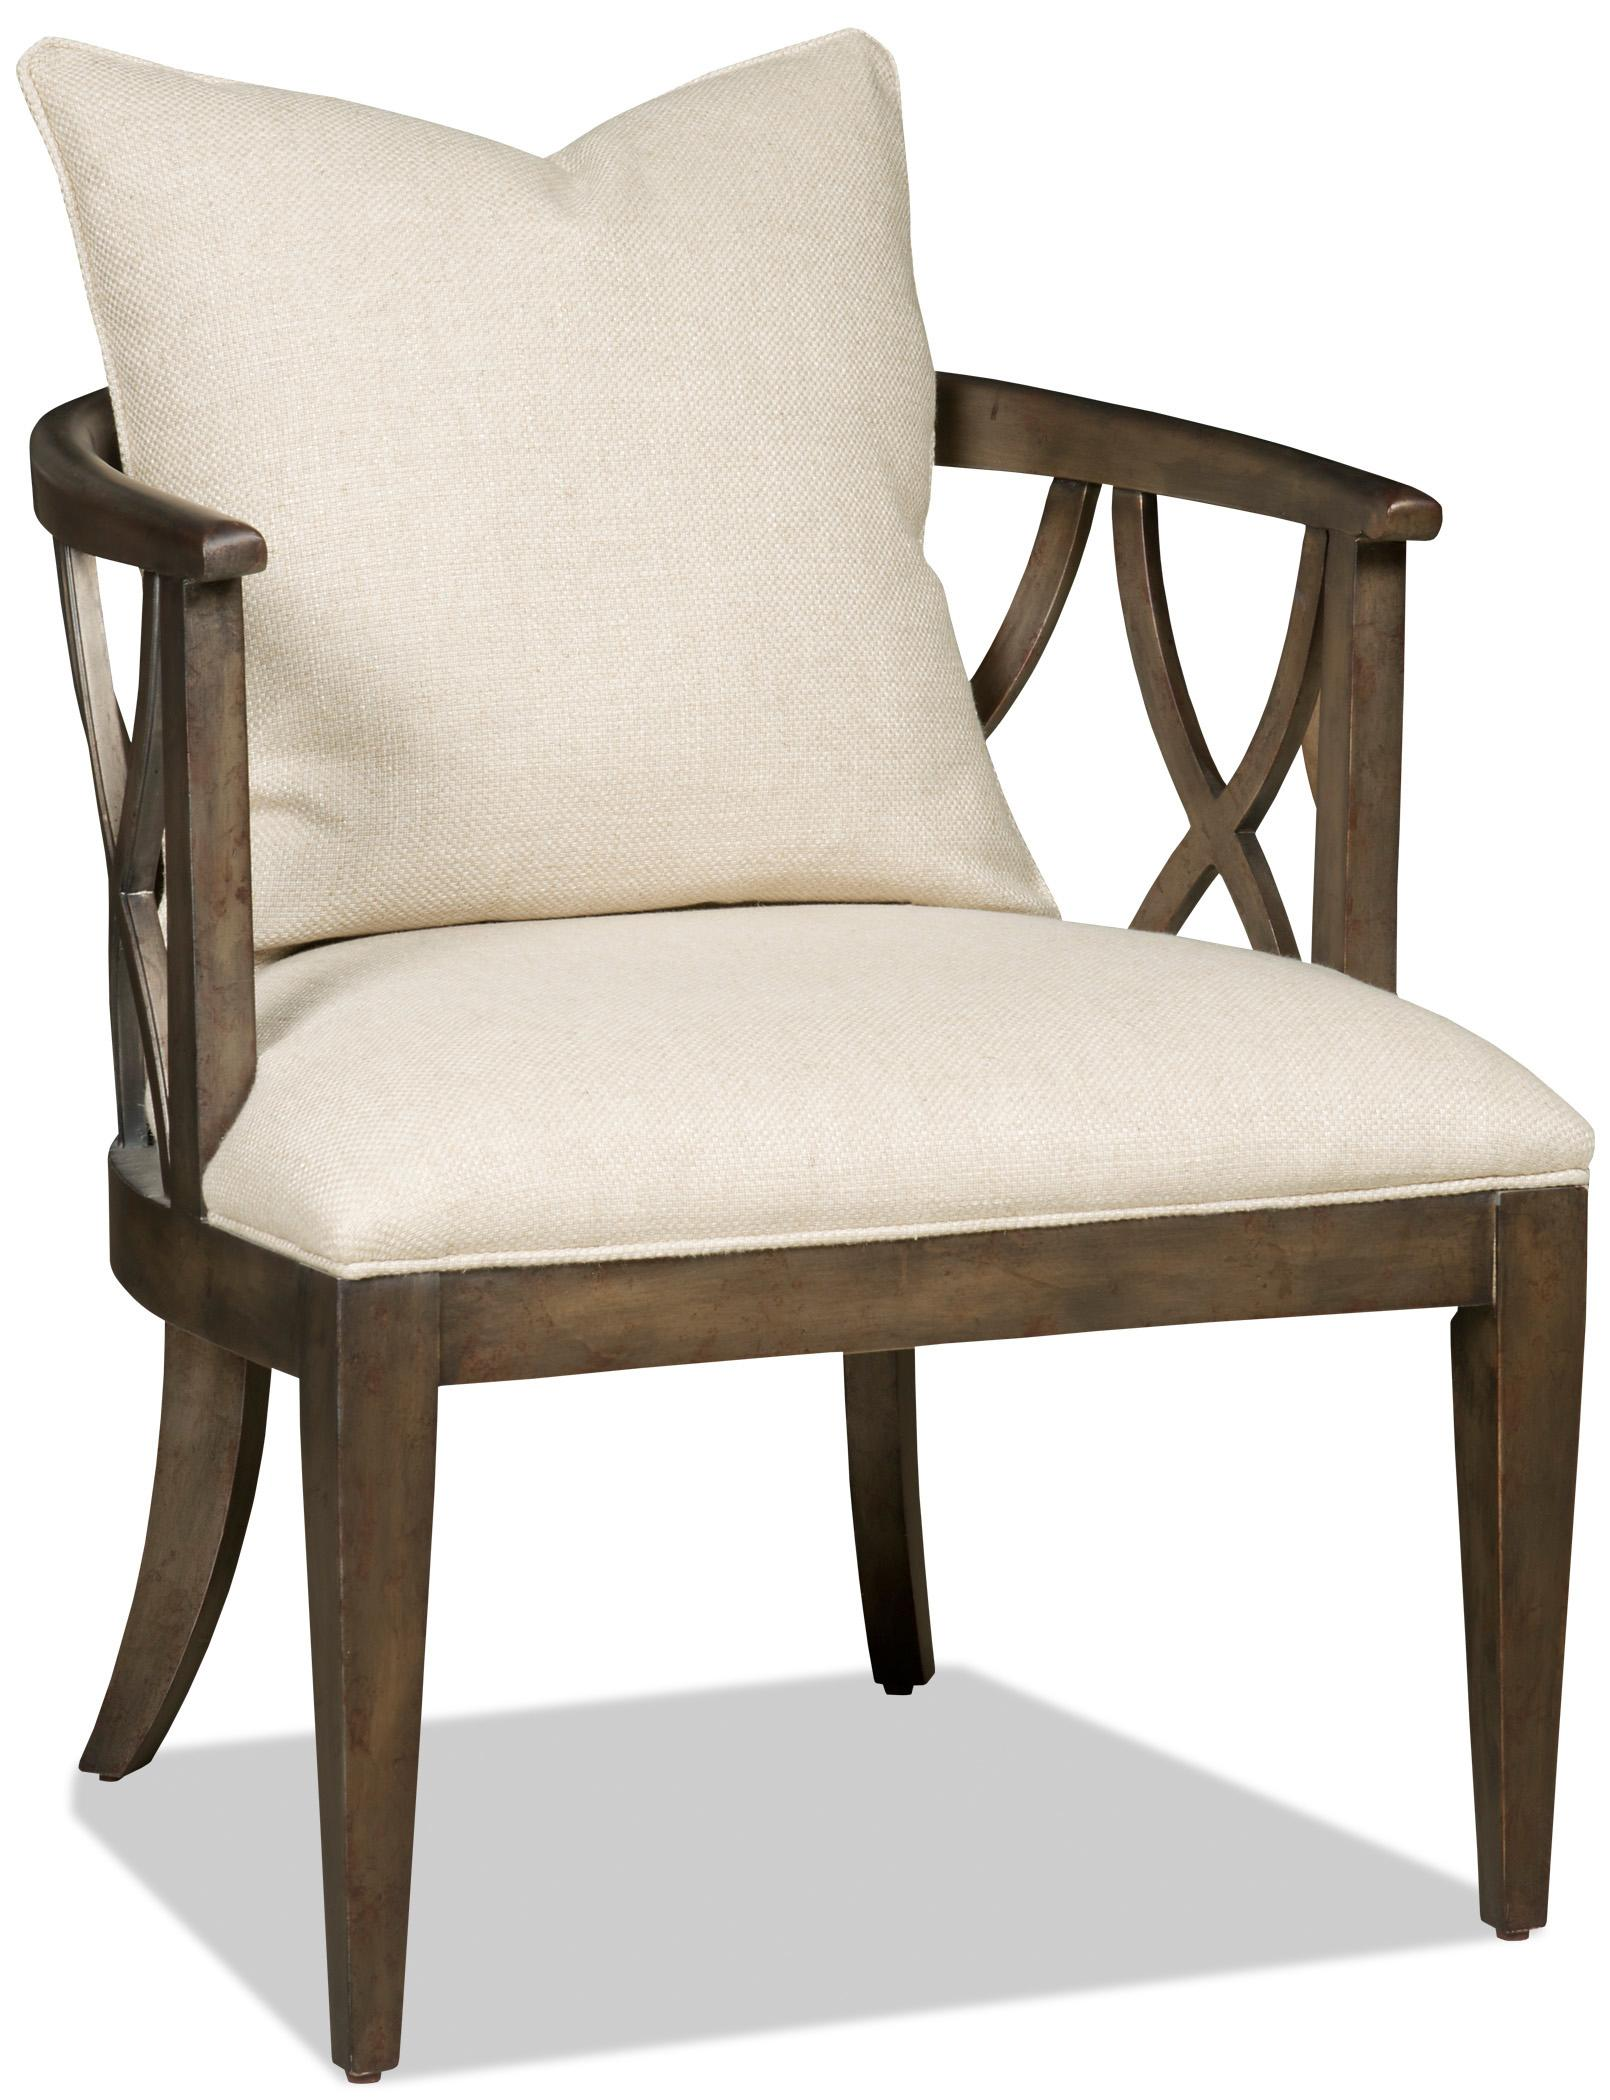 Hooker Furniture Accent Chairs Accent Chair - Item Number: 300-350026